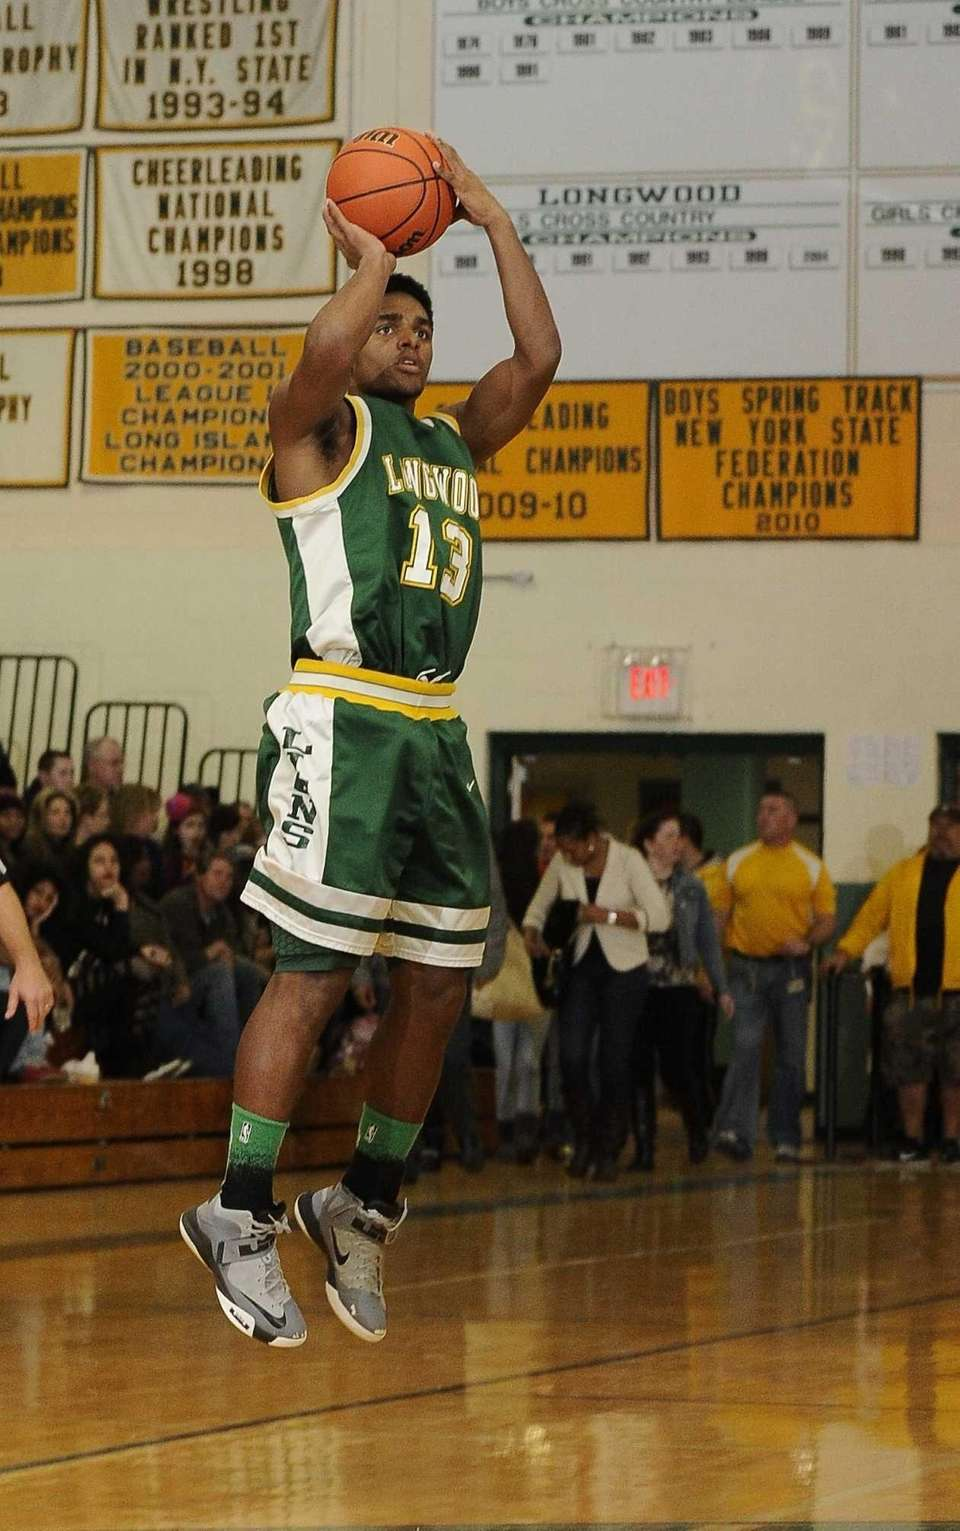 Longwood's Stephon Odle shoots against Northport' in the